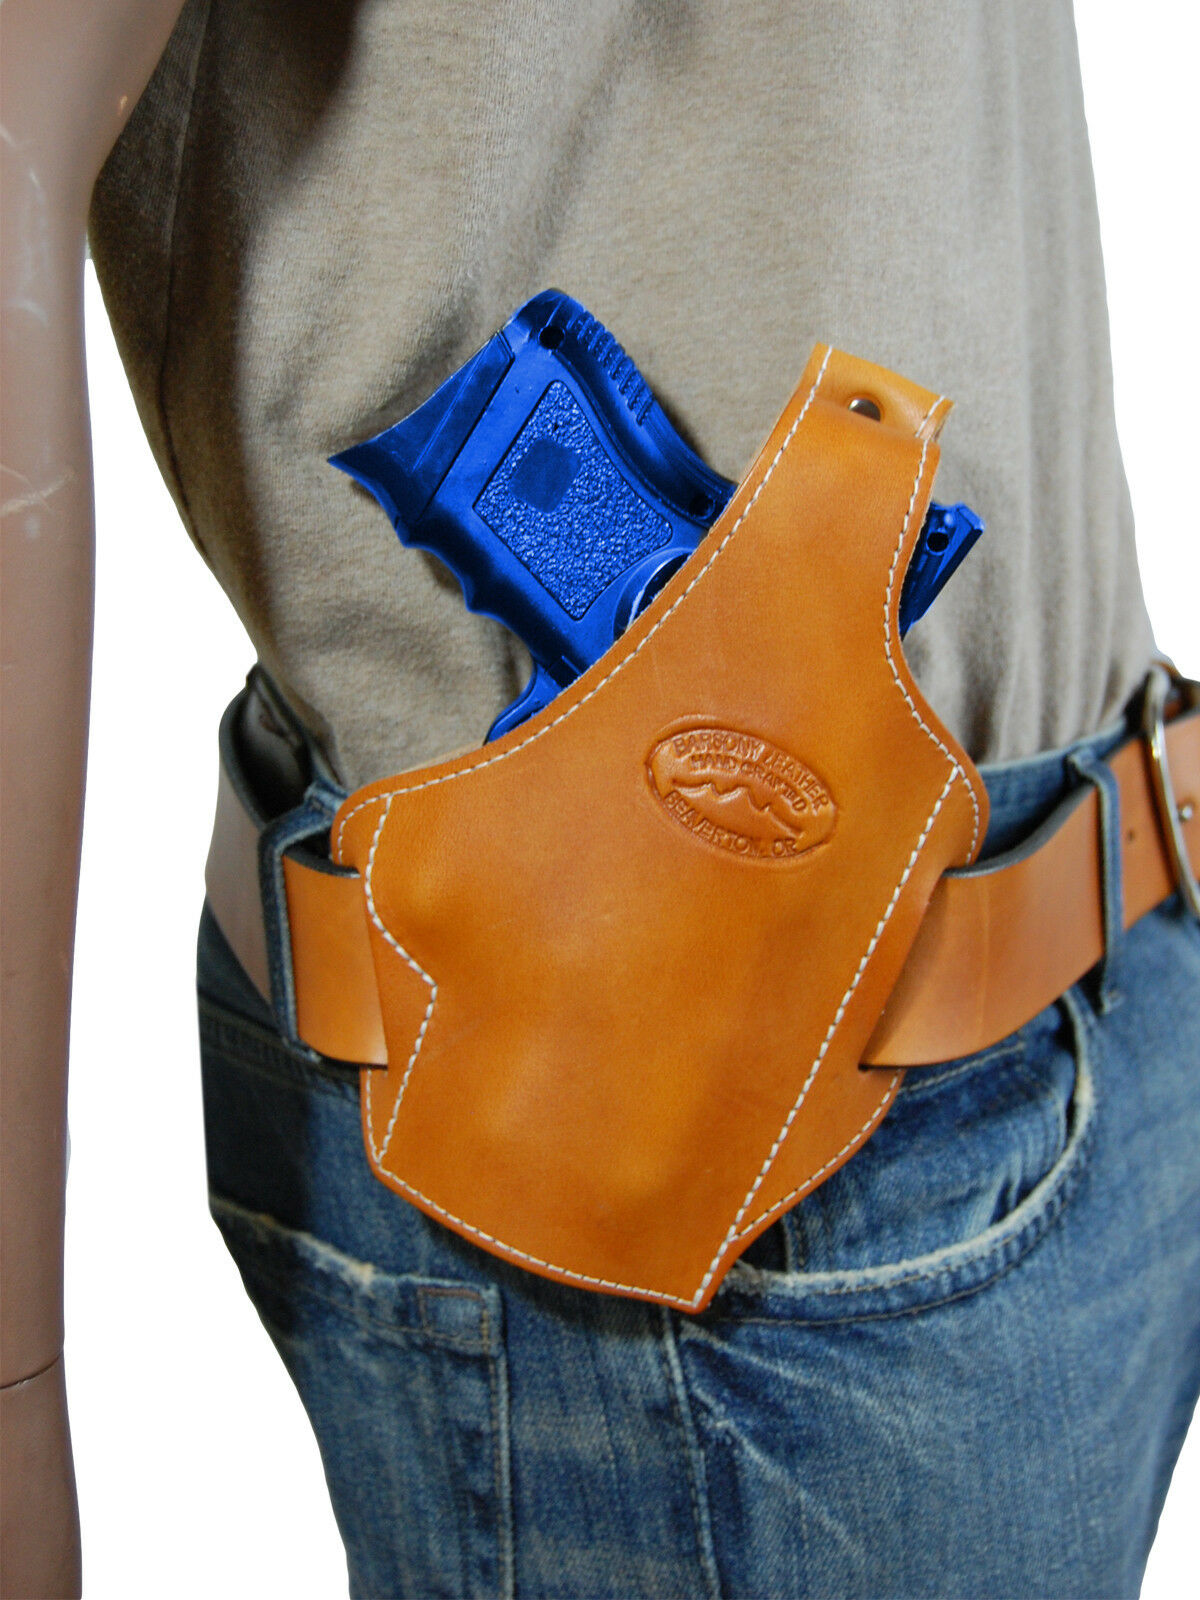 New Holster Barsony Tan Leder Pancake Gun Holster New for Astra Beretta Compact 9mm 40 45 a4b4e2